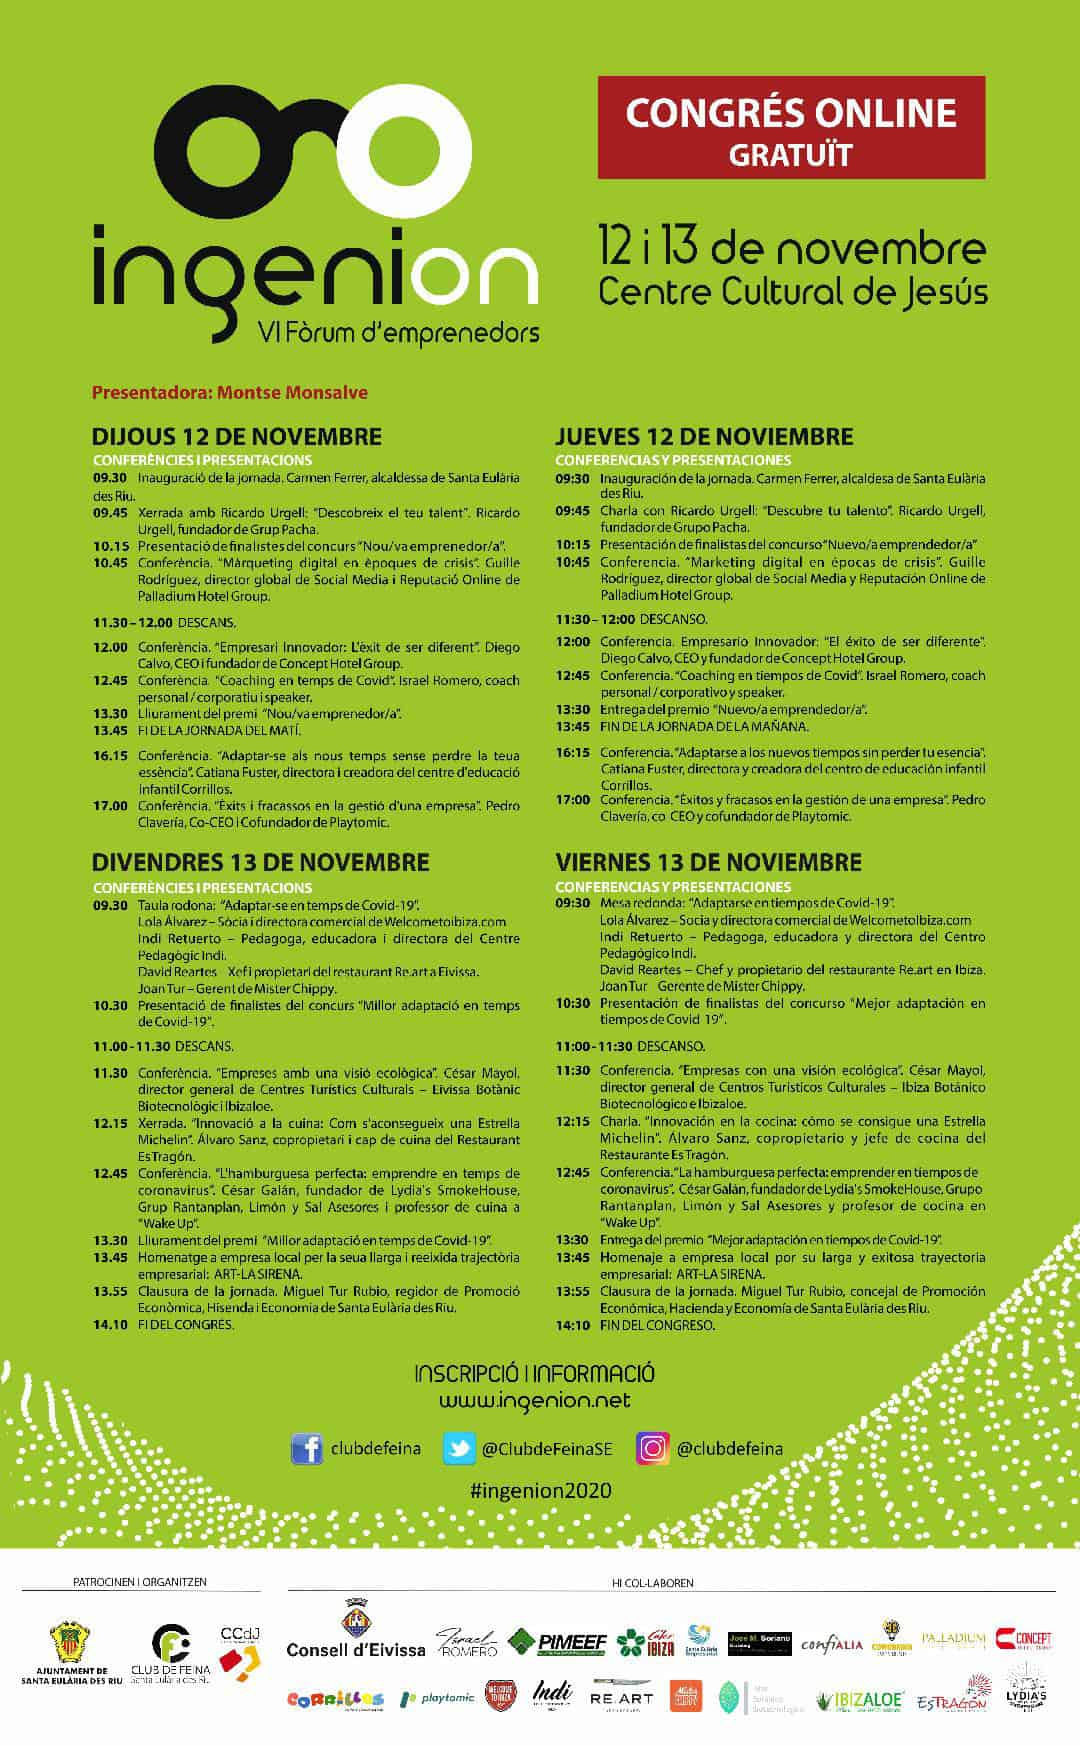 programma-ingenion-ibiza-2020-vi-forum-ondernemers-welcometoibiza